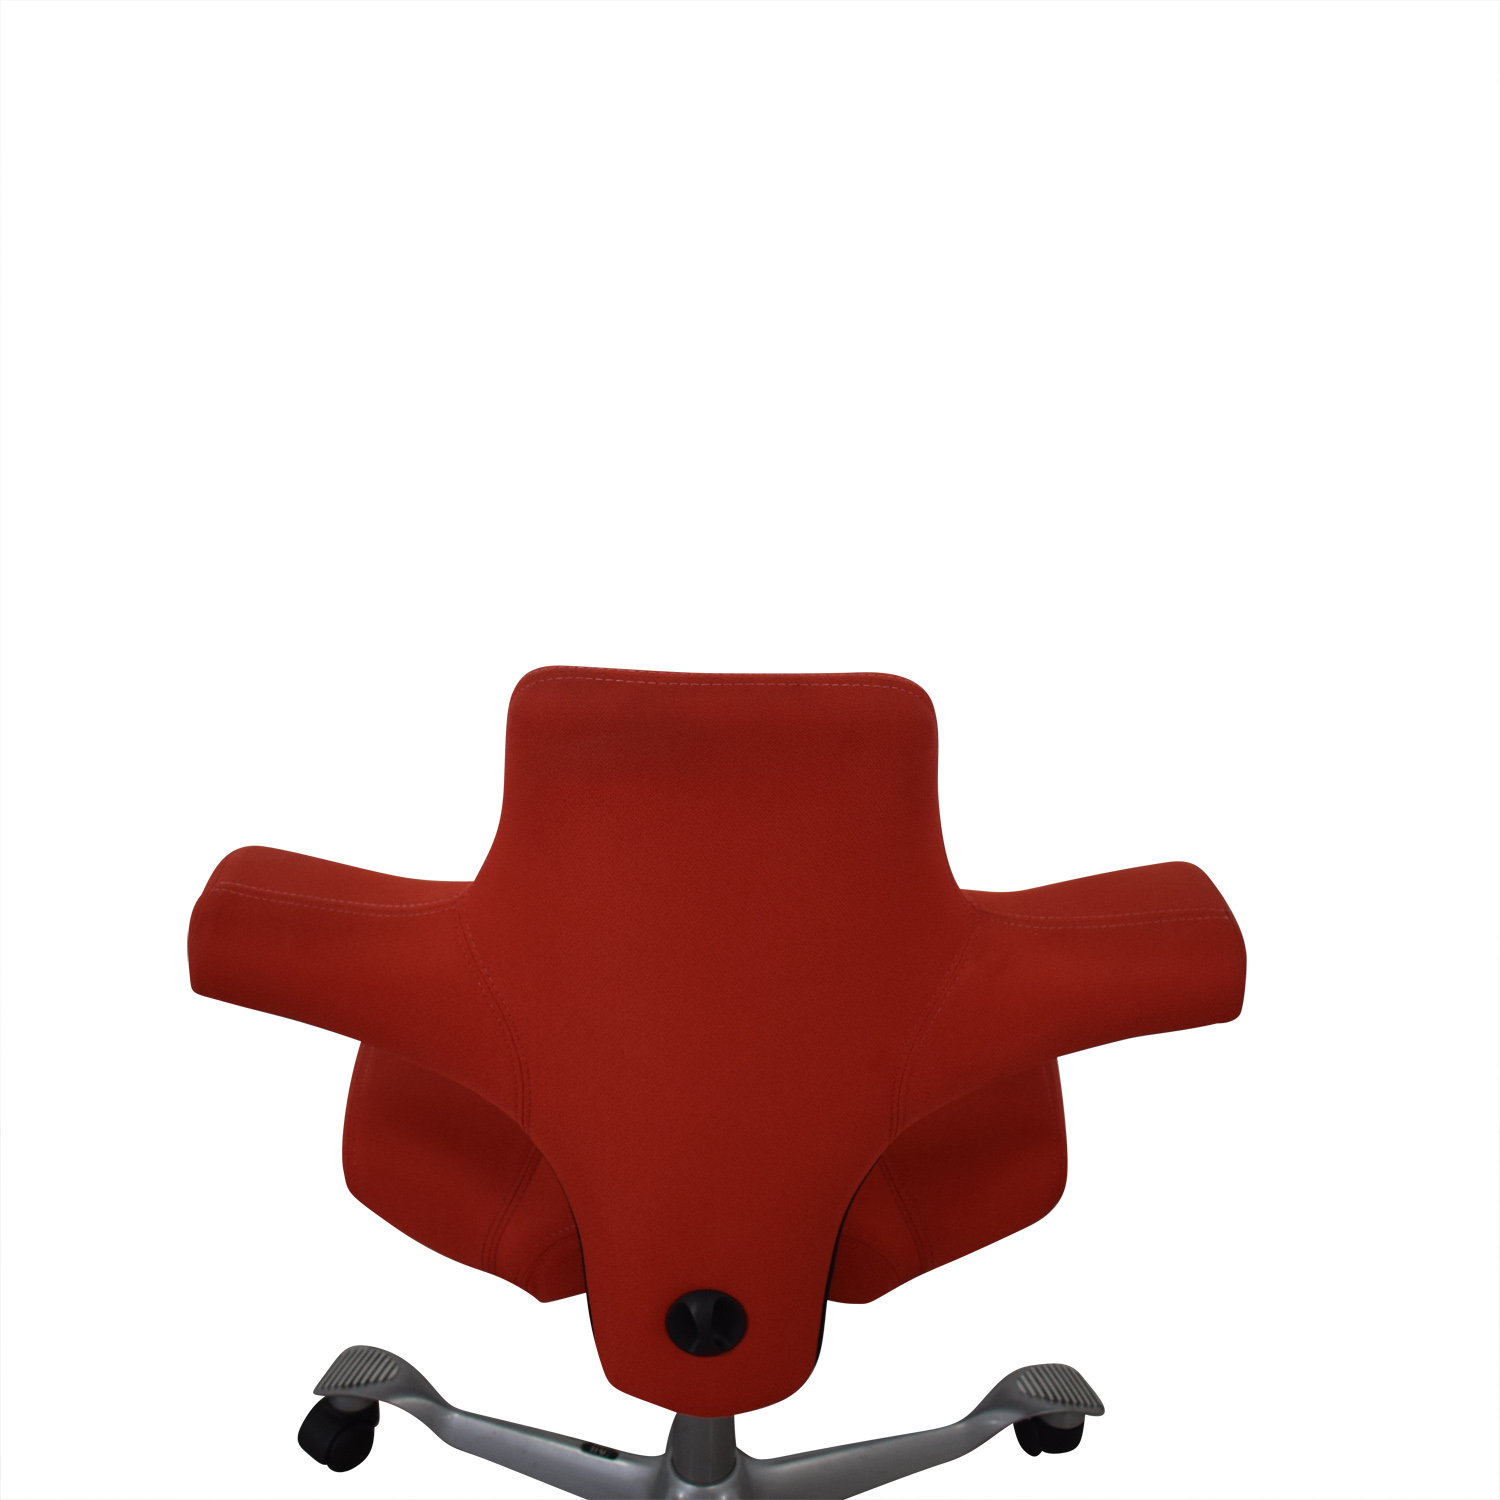 HAG HÅG Capisco Office Chair price